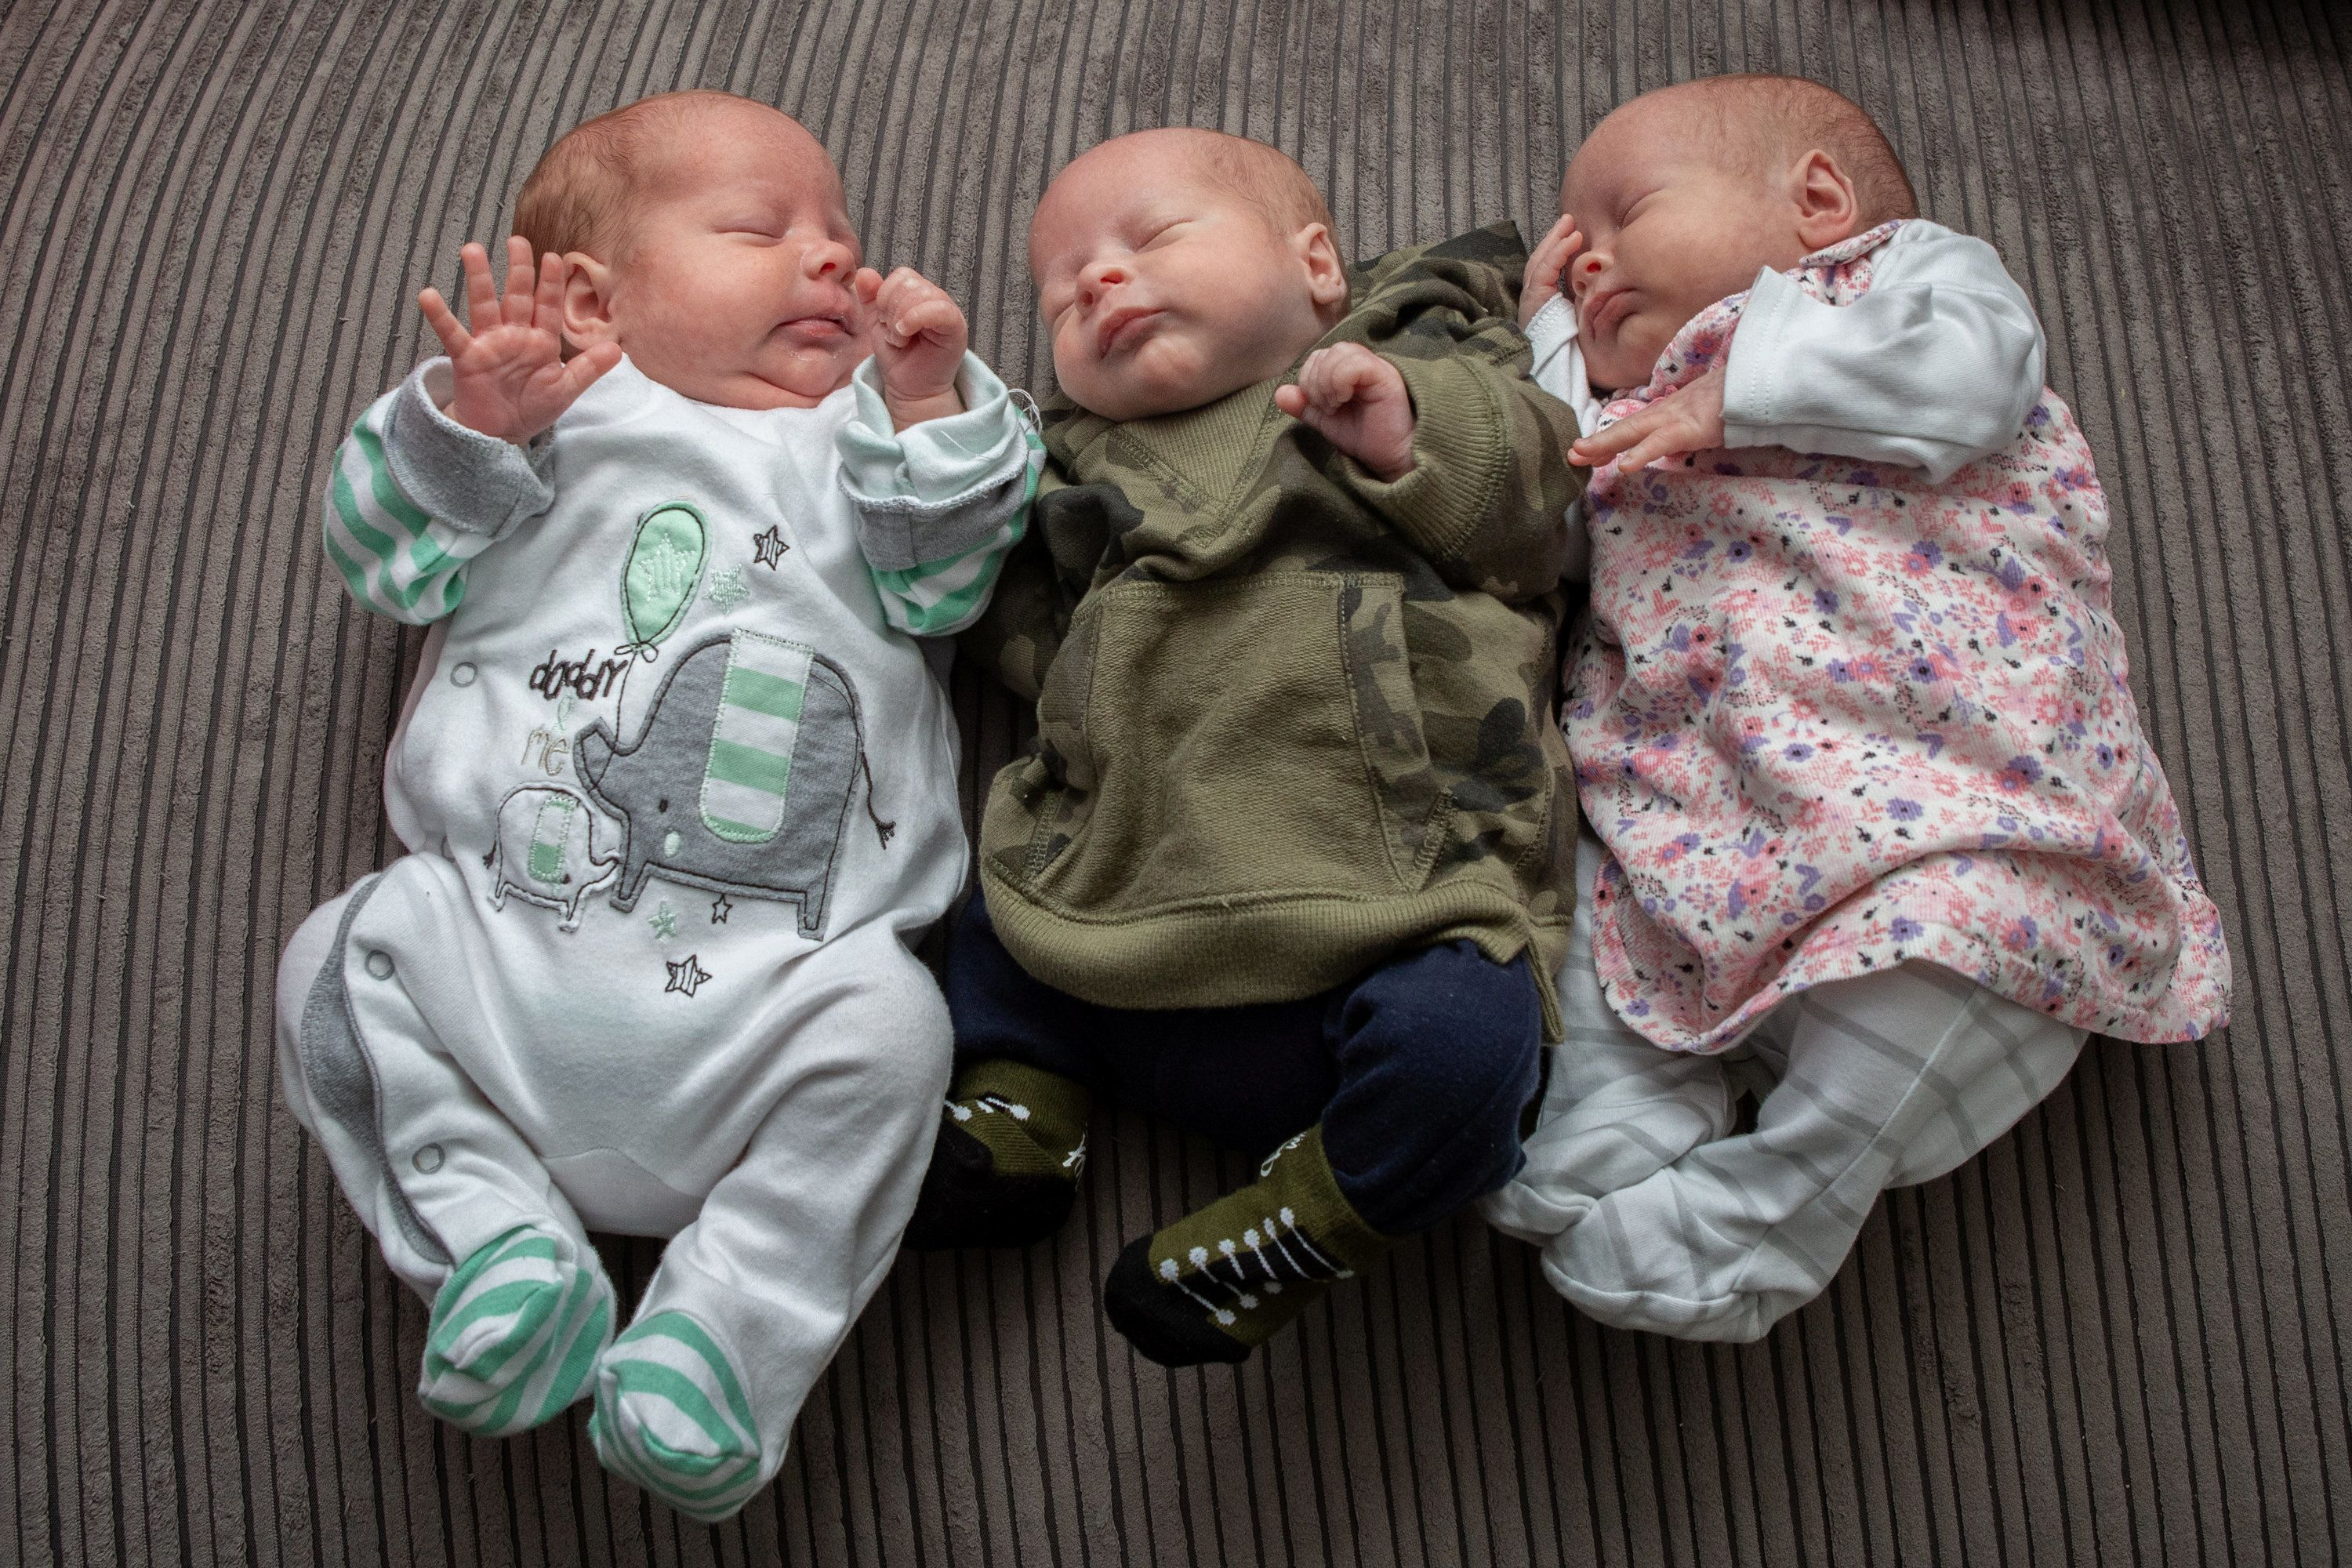 Mum Has IVF Baby And Twins At The Same Time After Having Sex Before Embryo